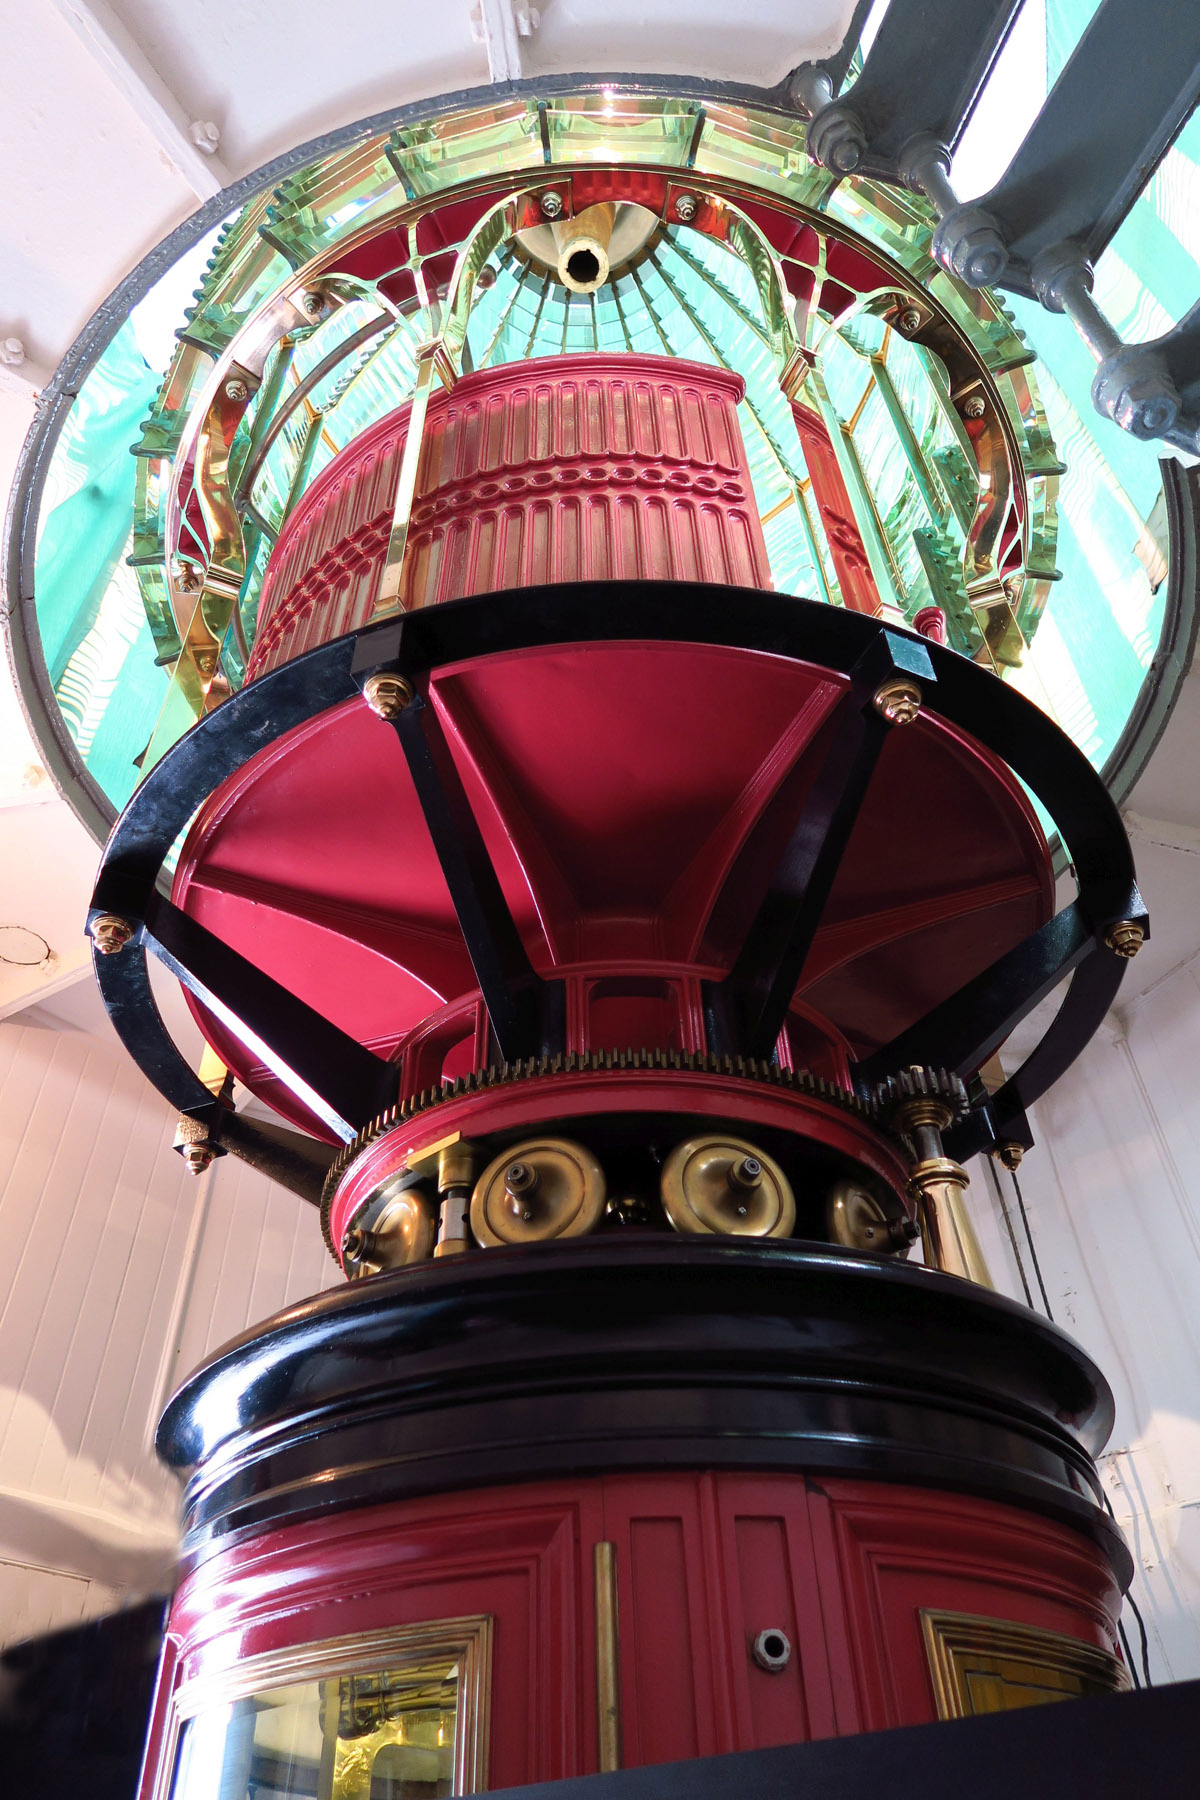 The First Order lens (largest made) was in service from 1870 to 1975.